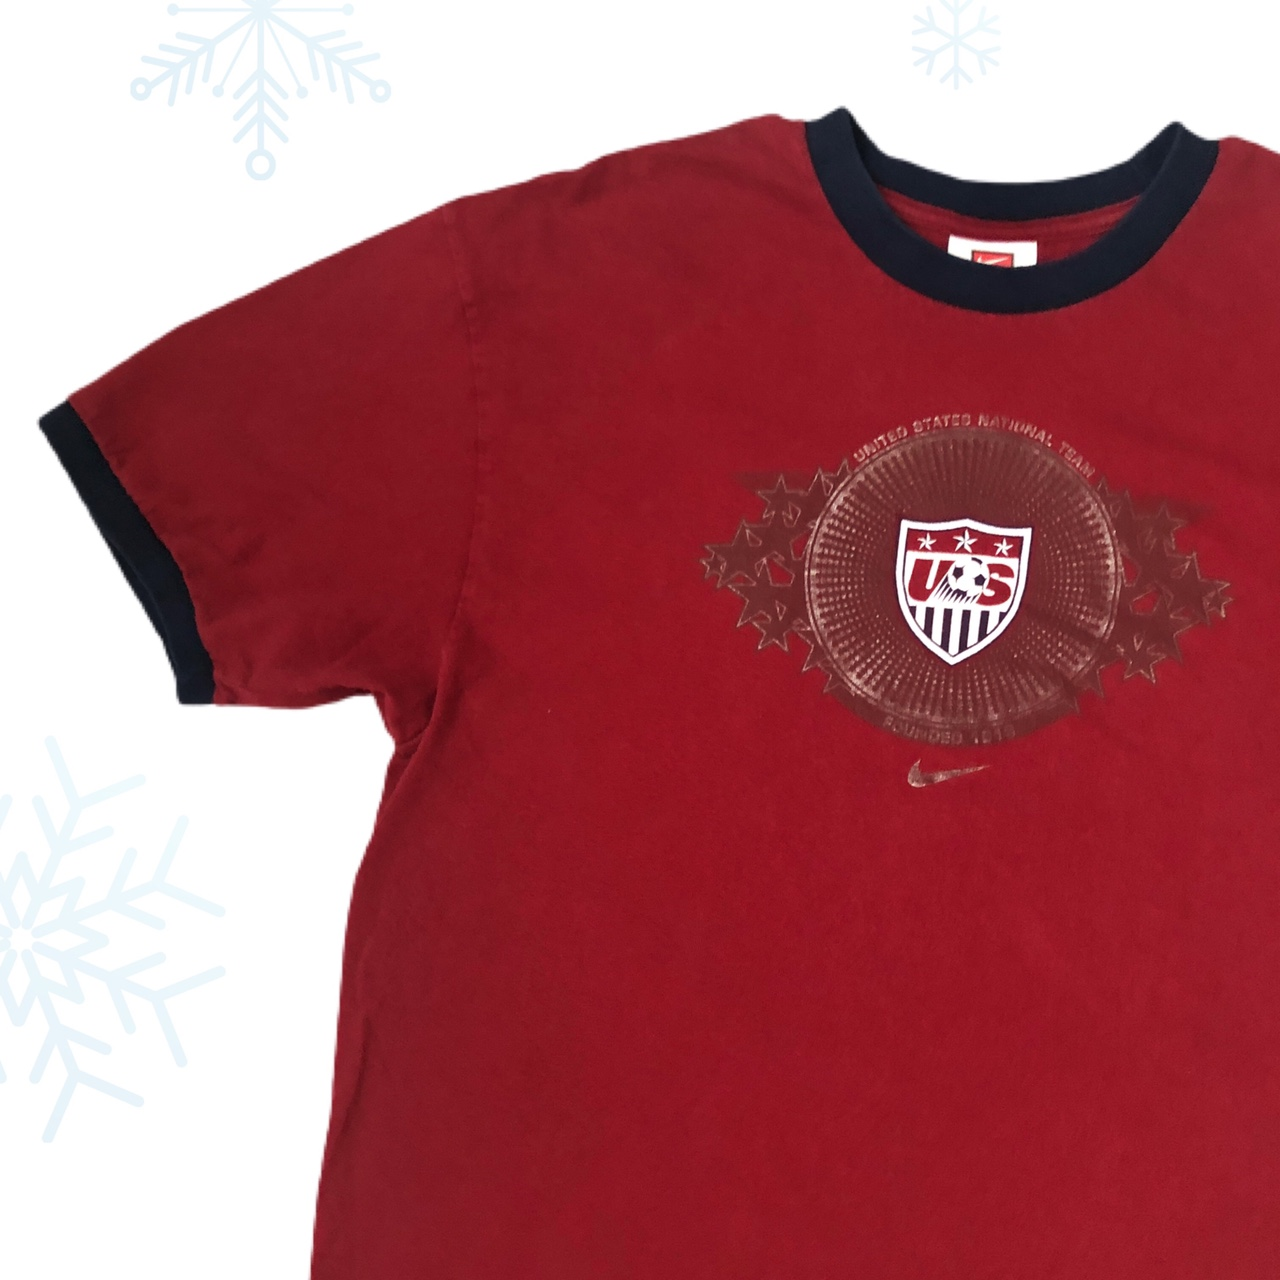 Product Image 1 - ⚽️ 2000s Nike US Soccer